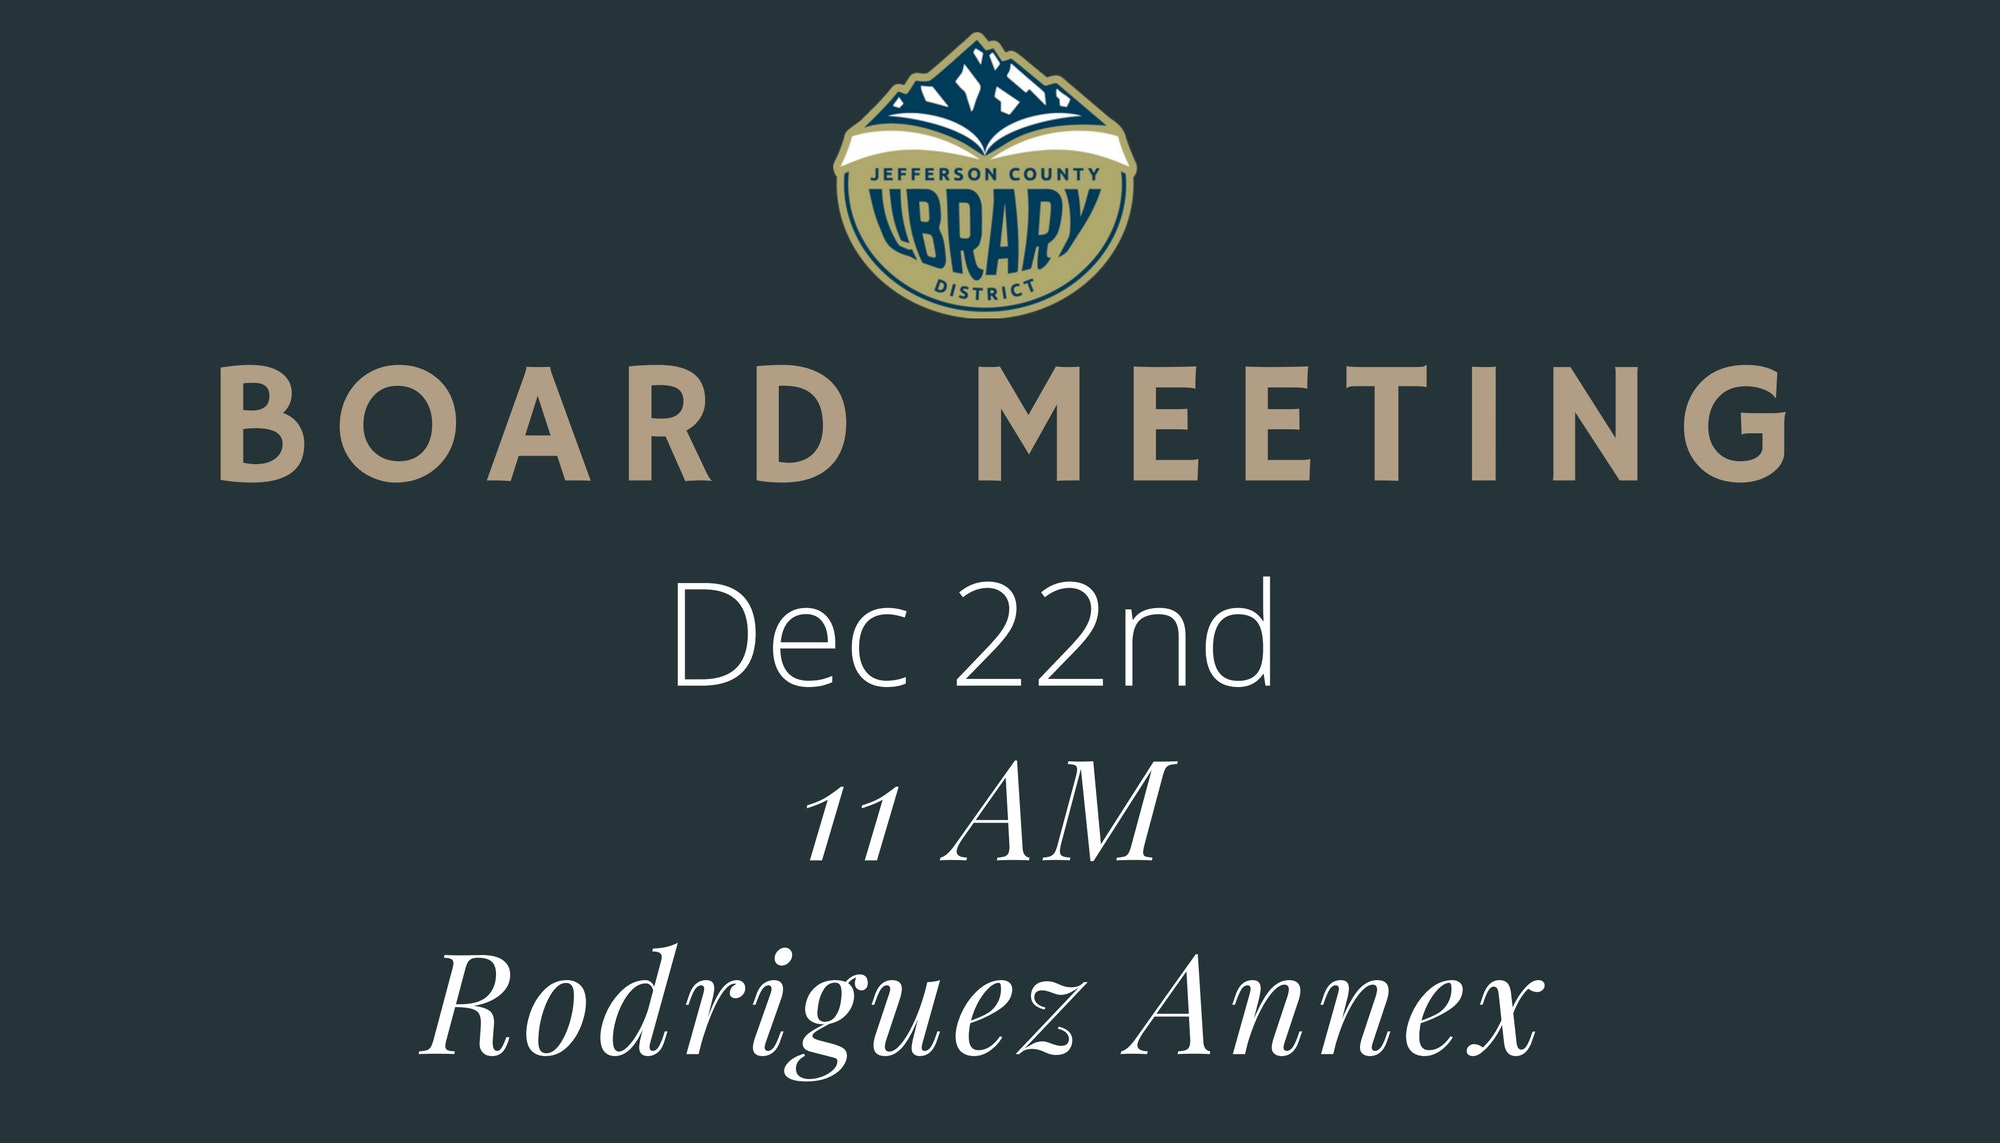 Board Special Meeting Announcement 12/22/20 at 11 am